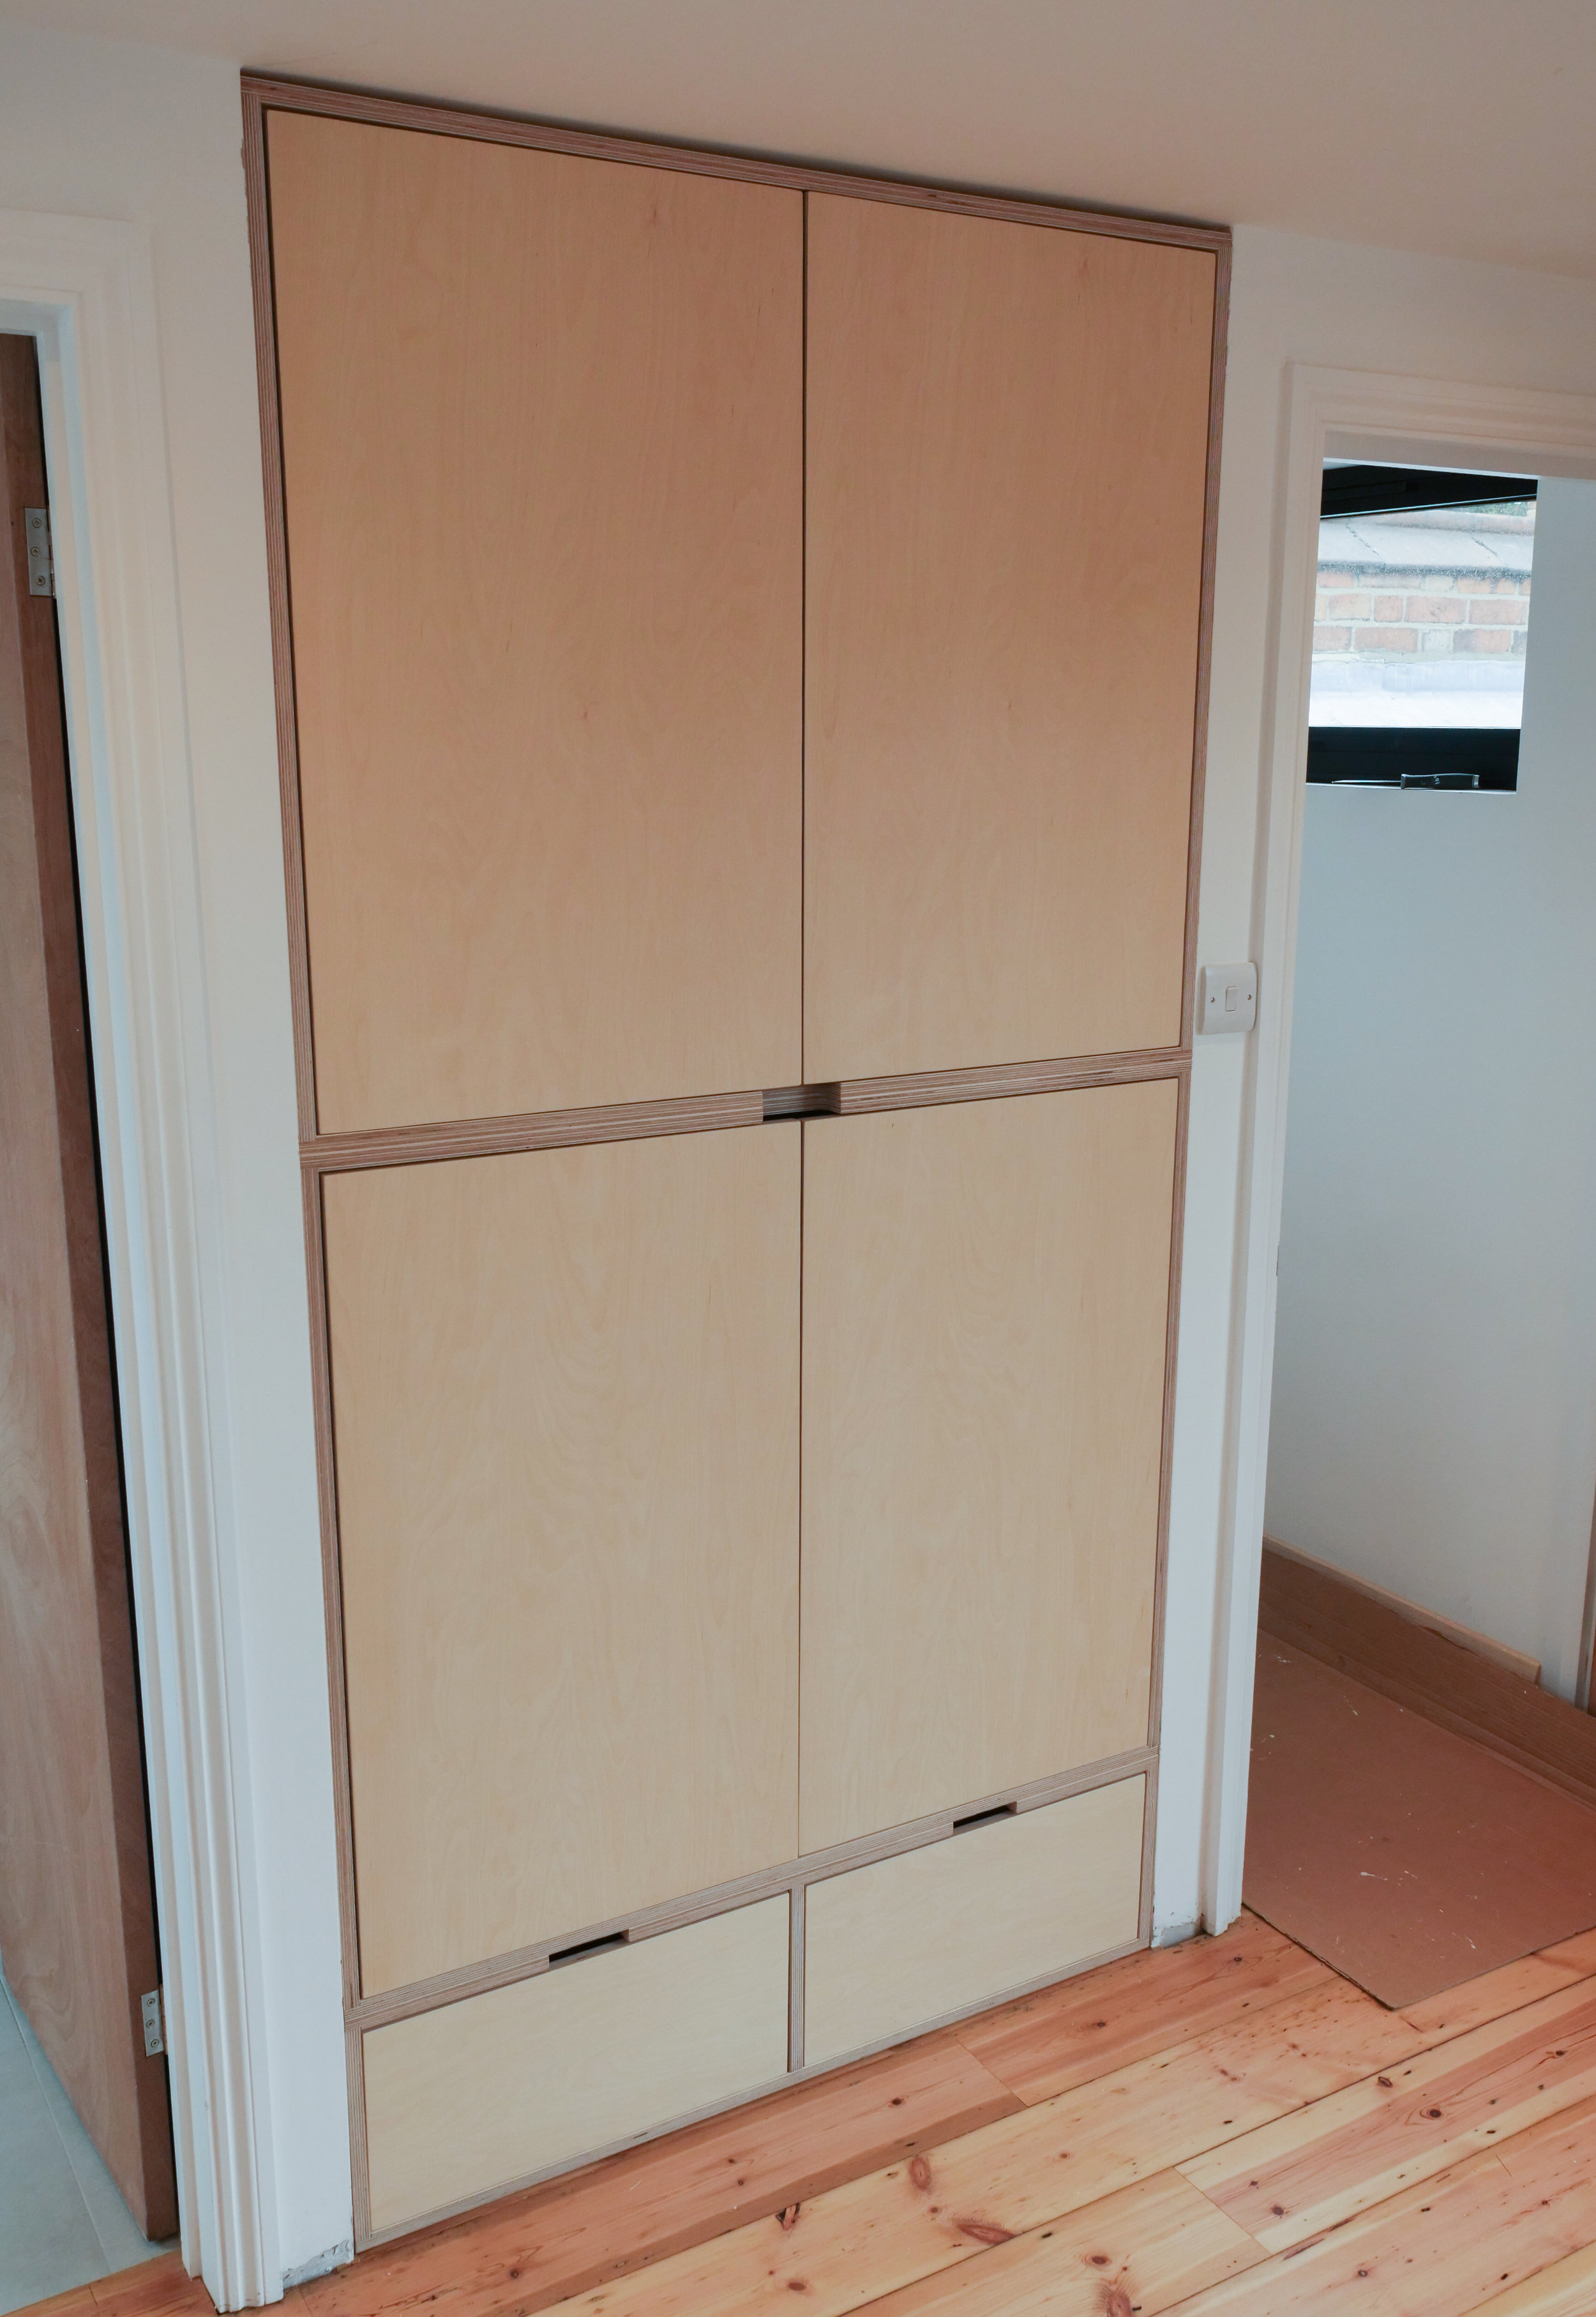 Another view of the wardrobe